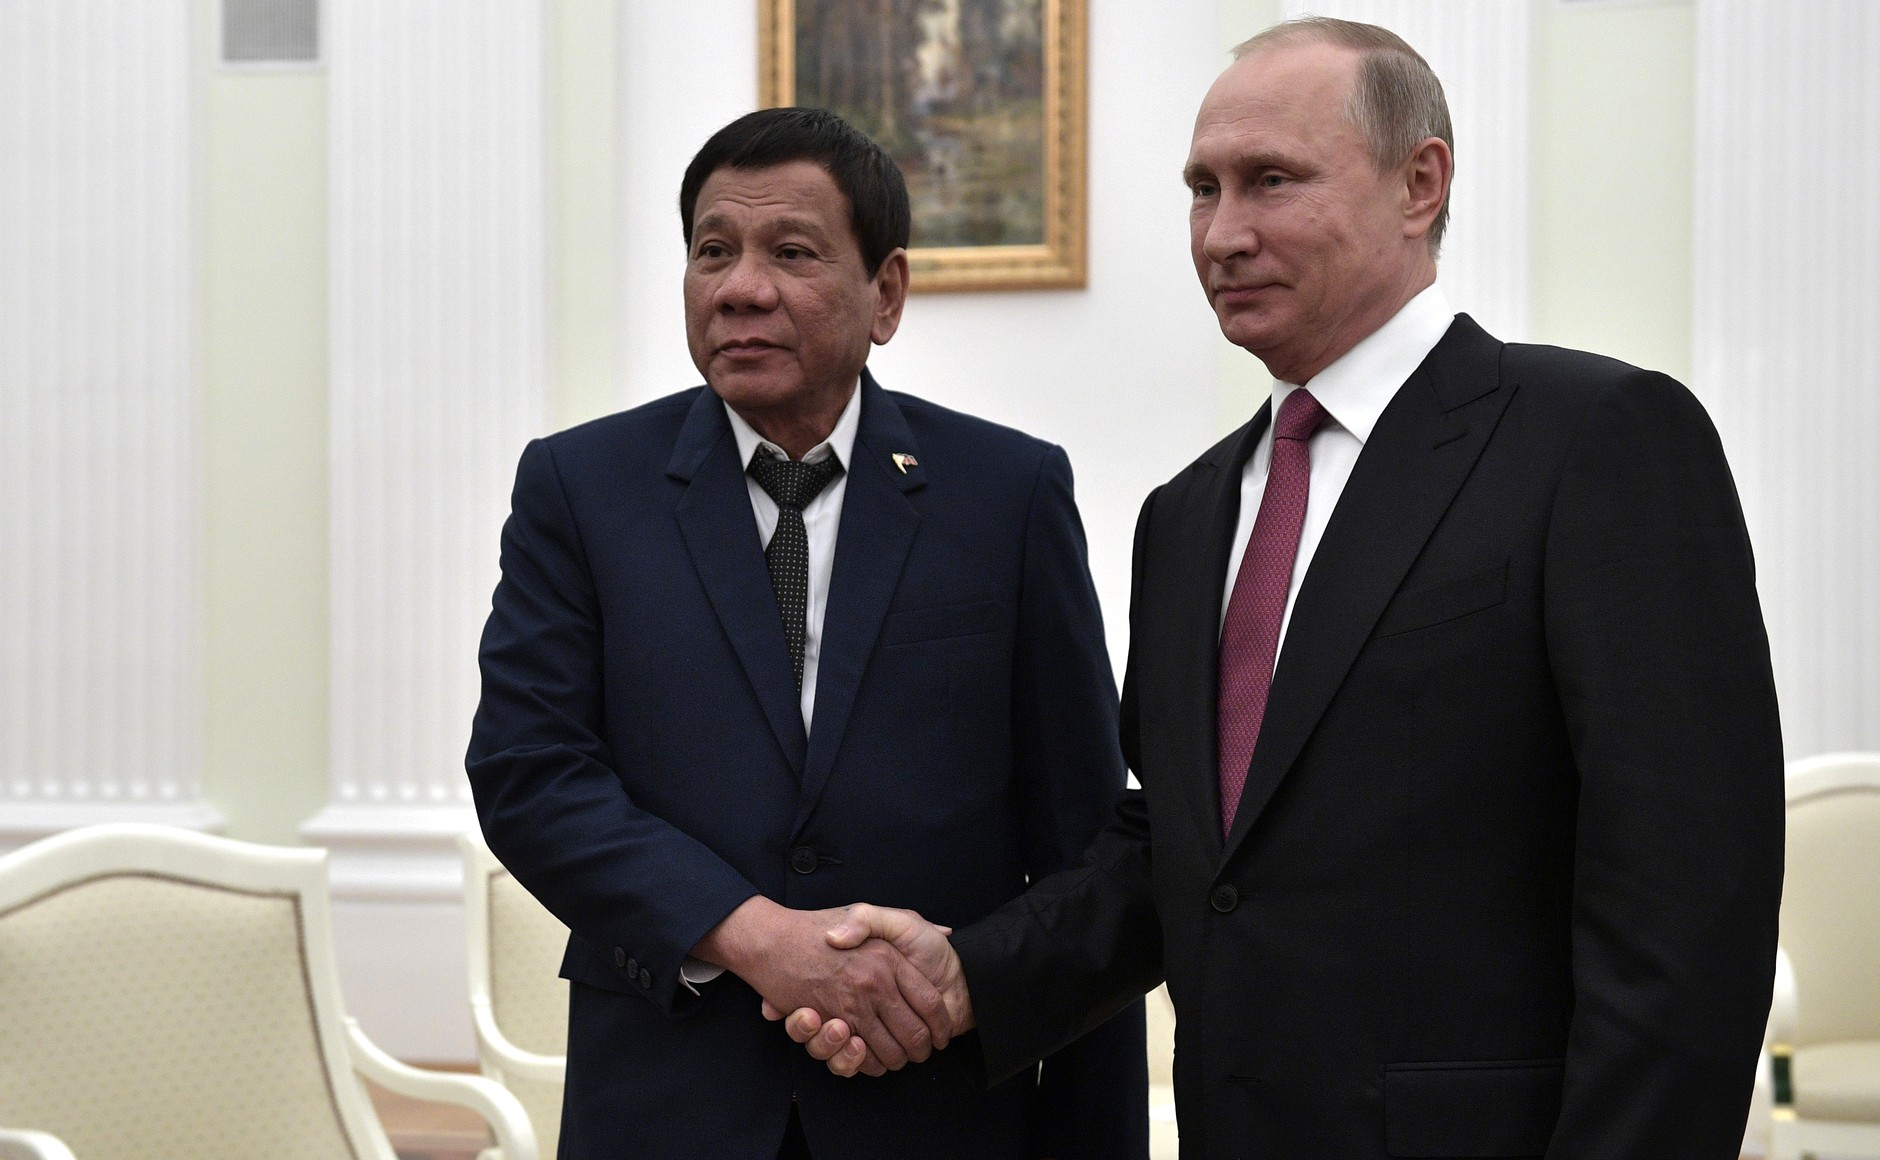 File:Meeting of Vladimir Putin with the President of the Philippines  Rodrigo Duterte.jpg - Wikimedia Commons